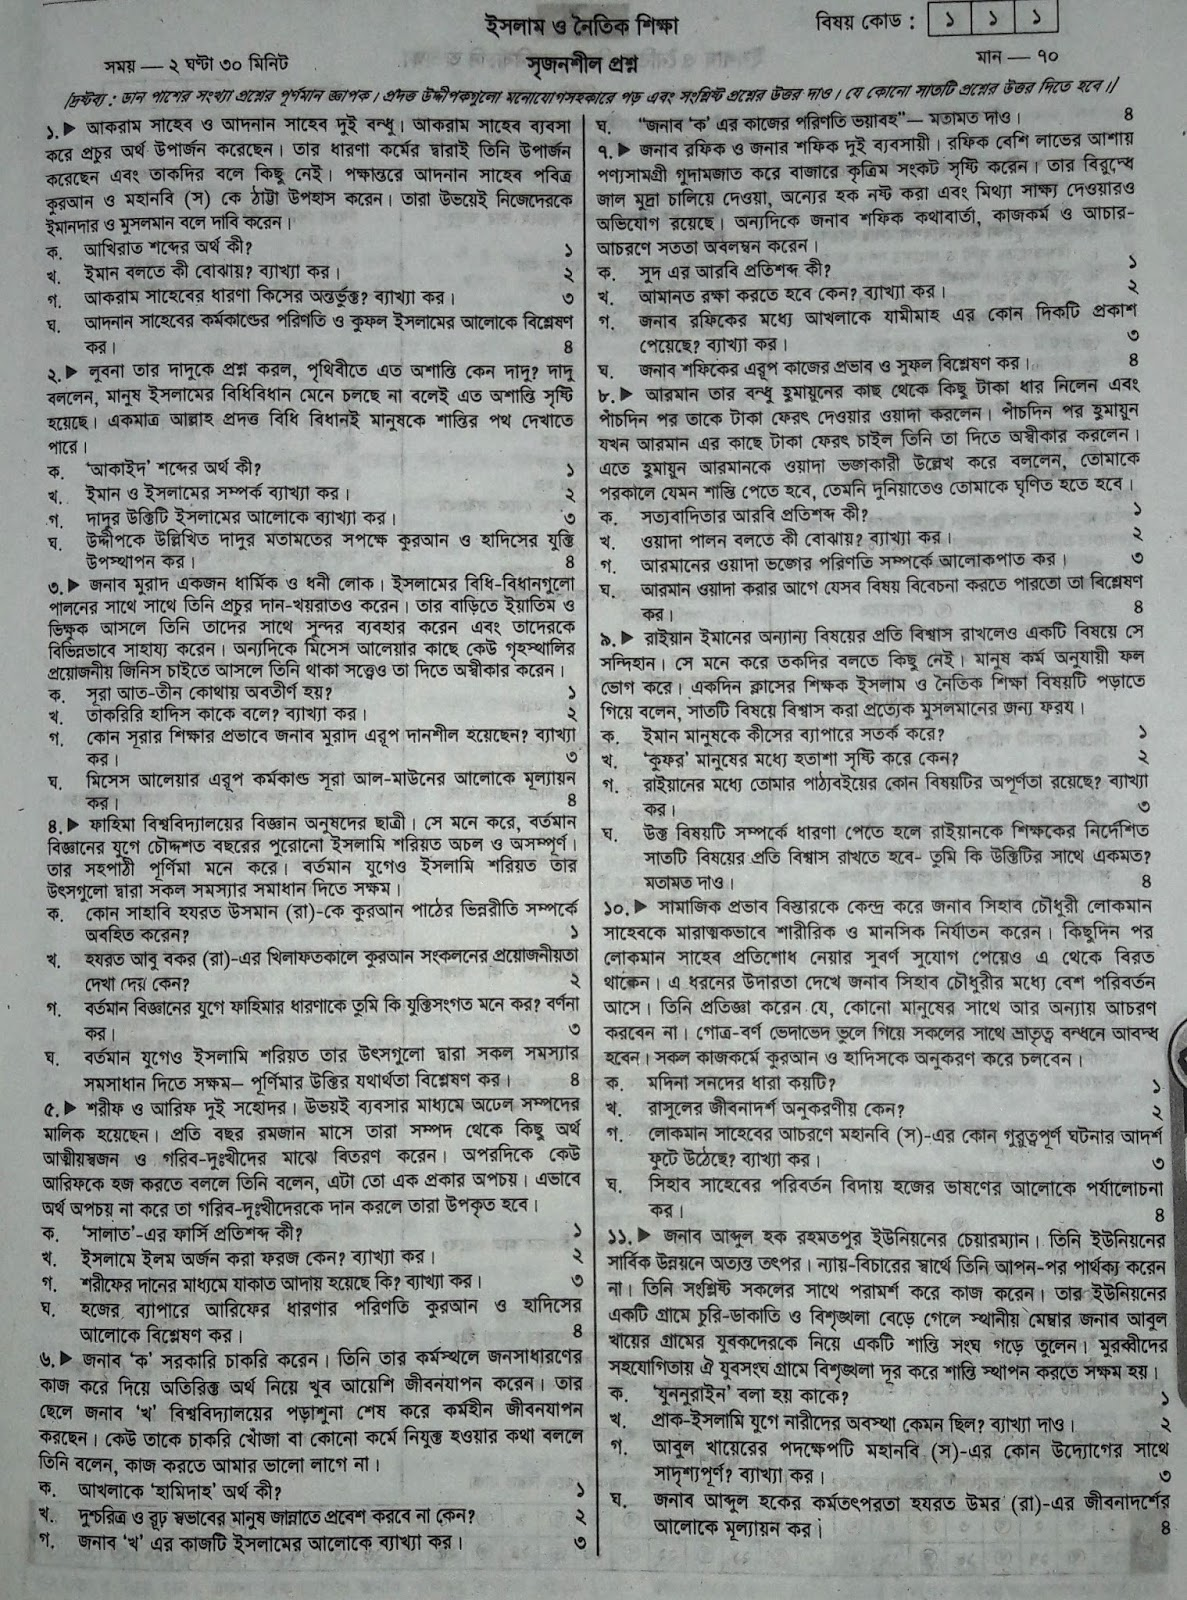 ssc Islam and Moral Studies suggestion, question paper, model question, mcq question, question pattern, syllabus for dhaka board, all boards